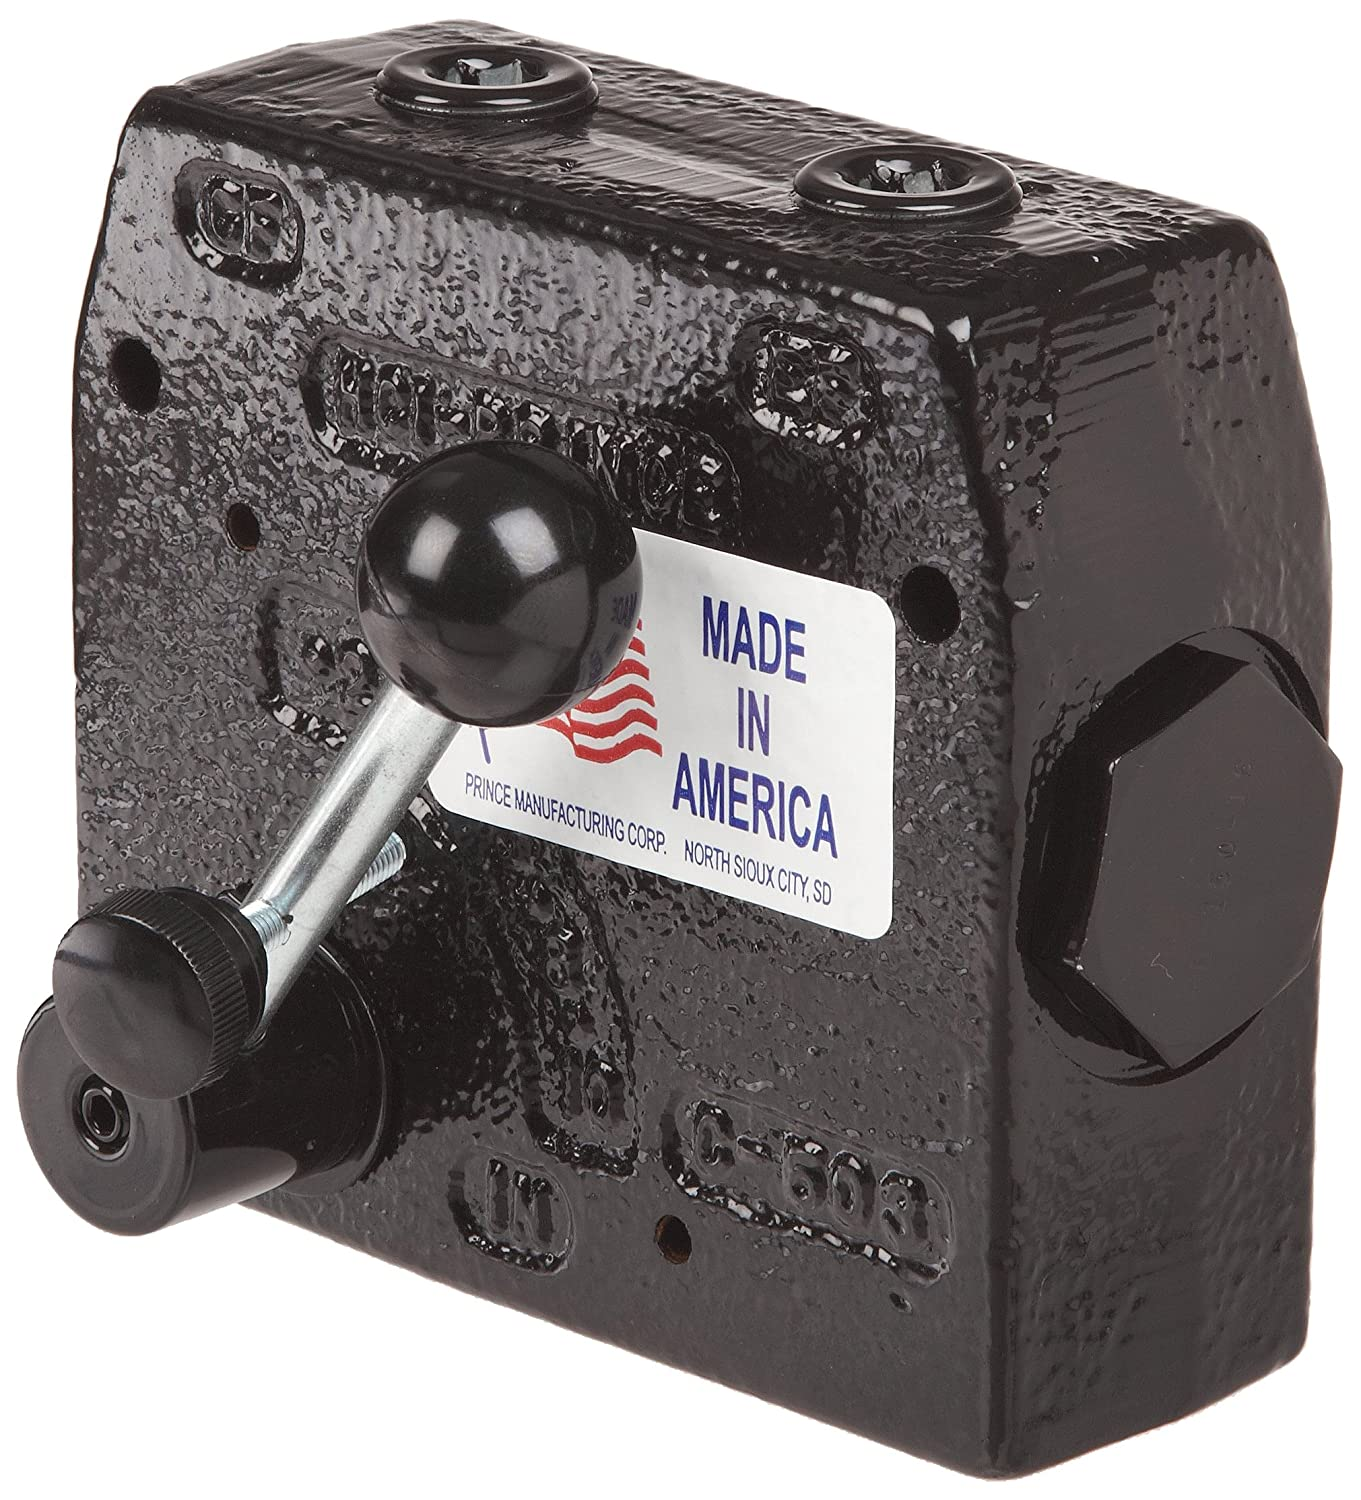 Prince rd 150 16 flow control valve adjustable pressure relief prince rd 150 16 flow control valve adjustable pressure relief cast iron 3000 psi 0 16 gpm 12 nptf hydraulic directional control valves amazon nvjuhfo Choice Image